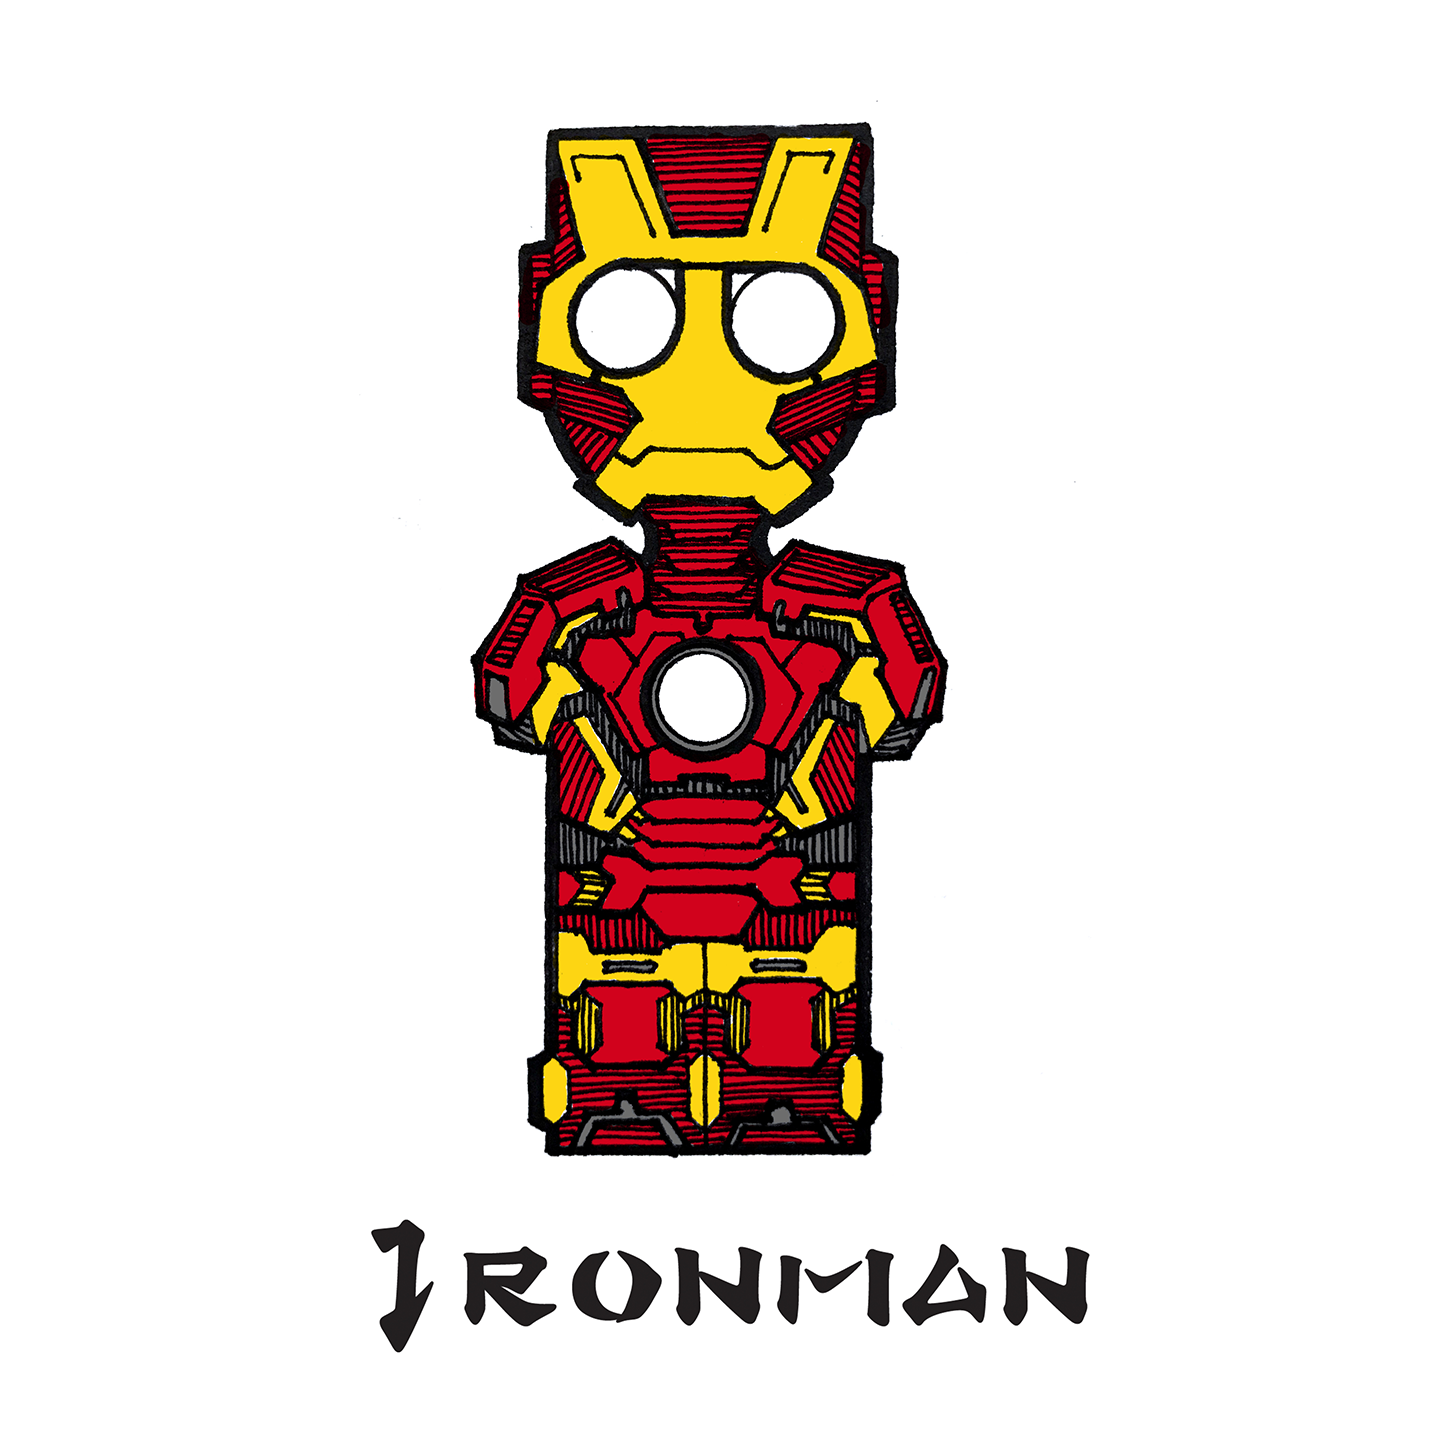 02_ironman_color.png